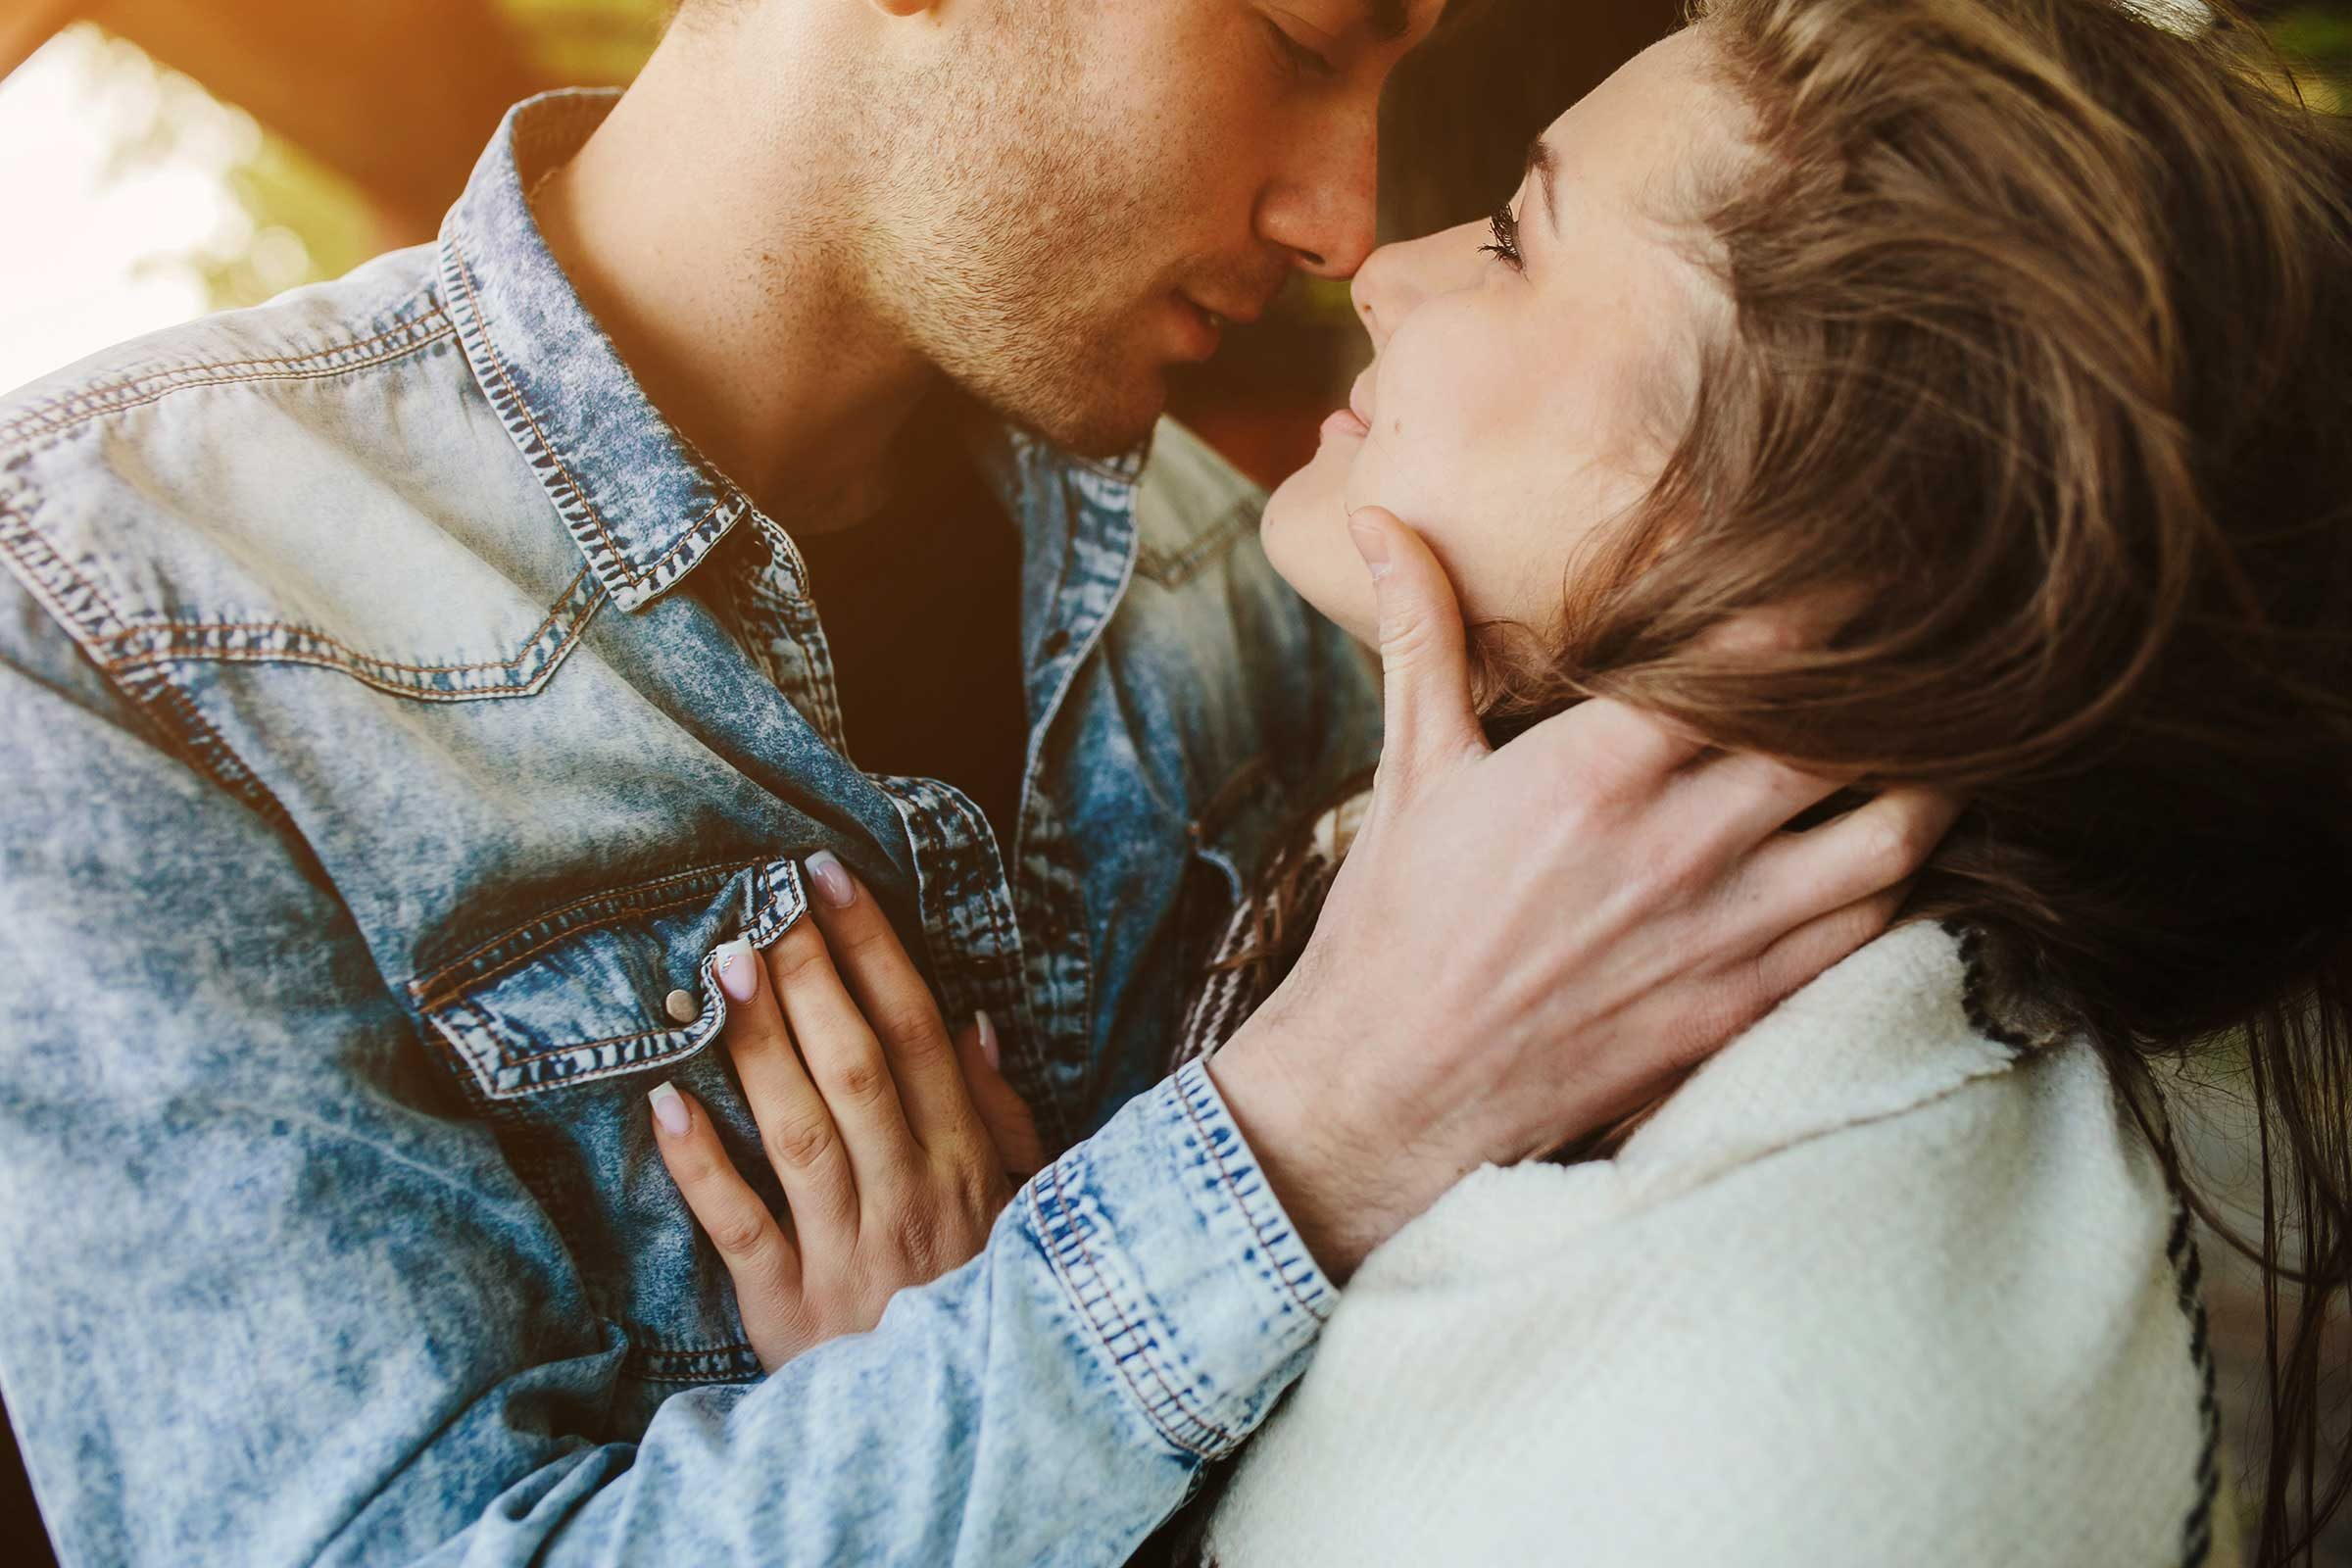 Top foods to increase libido or sexual desire my health tips - Essentials For A Healthy Sex Life